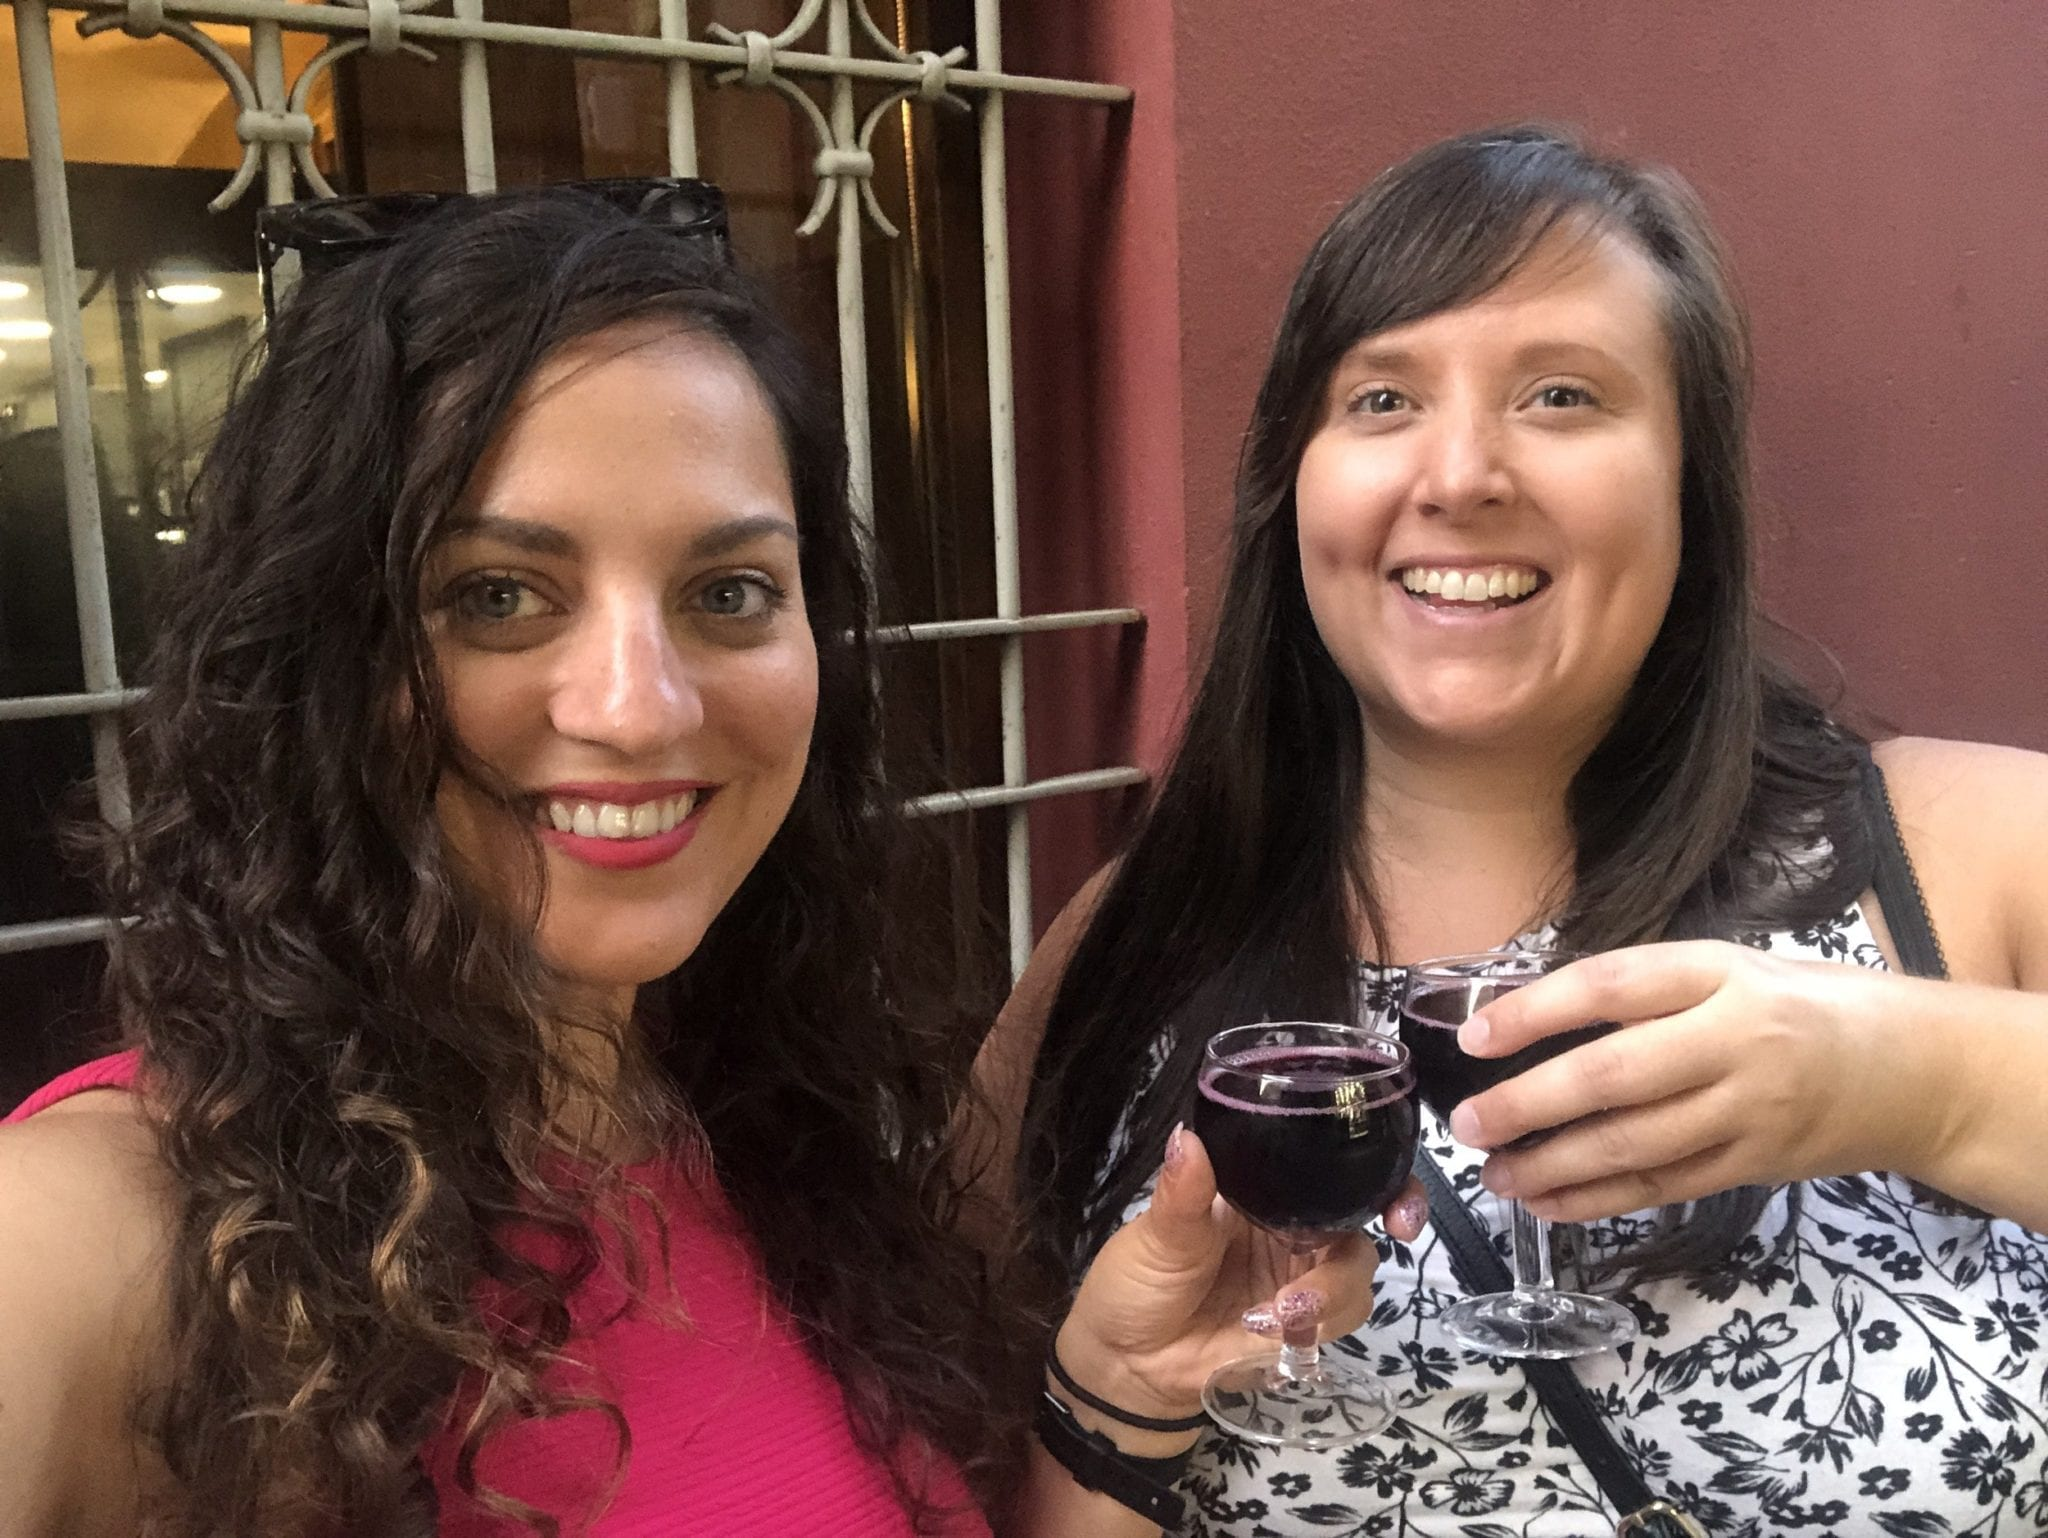 Kate and Cailin take a smiling selfie while toasting small glasses of red lambrusco wine.